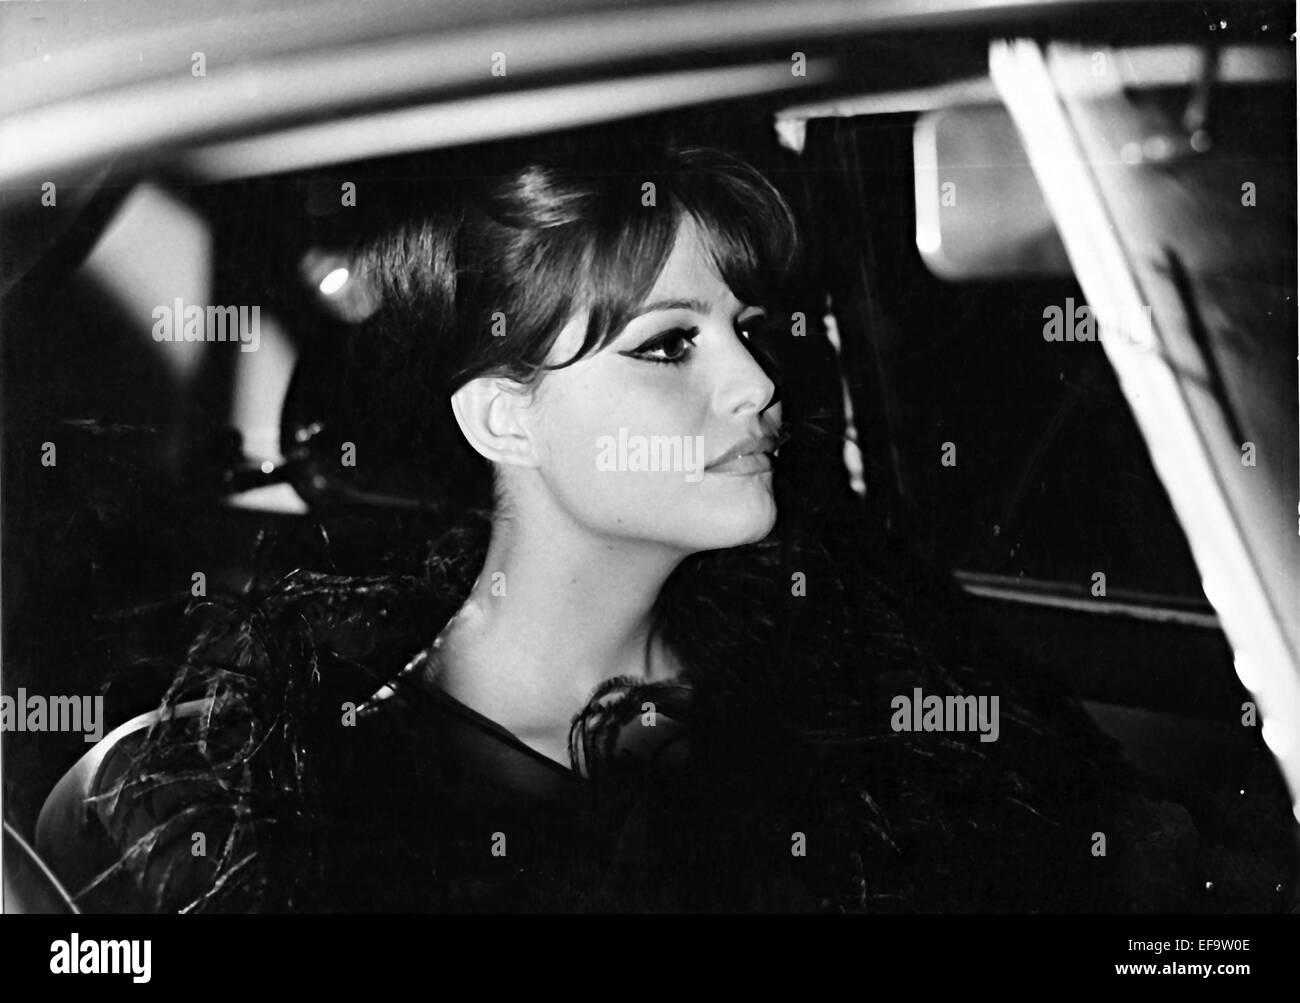 CLAUDIA CARDINALE 8 1/2 EIGHT AND A HALF (1963 Stock Photo ...